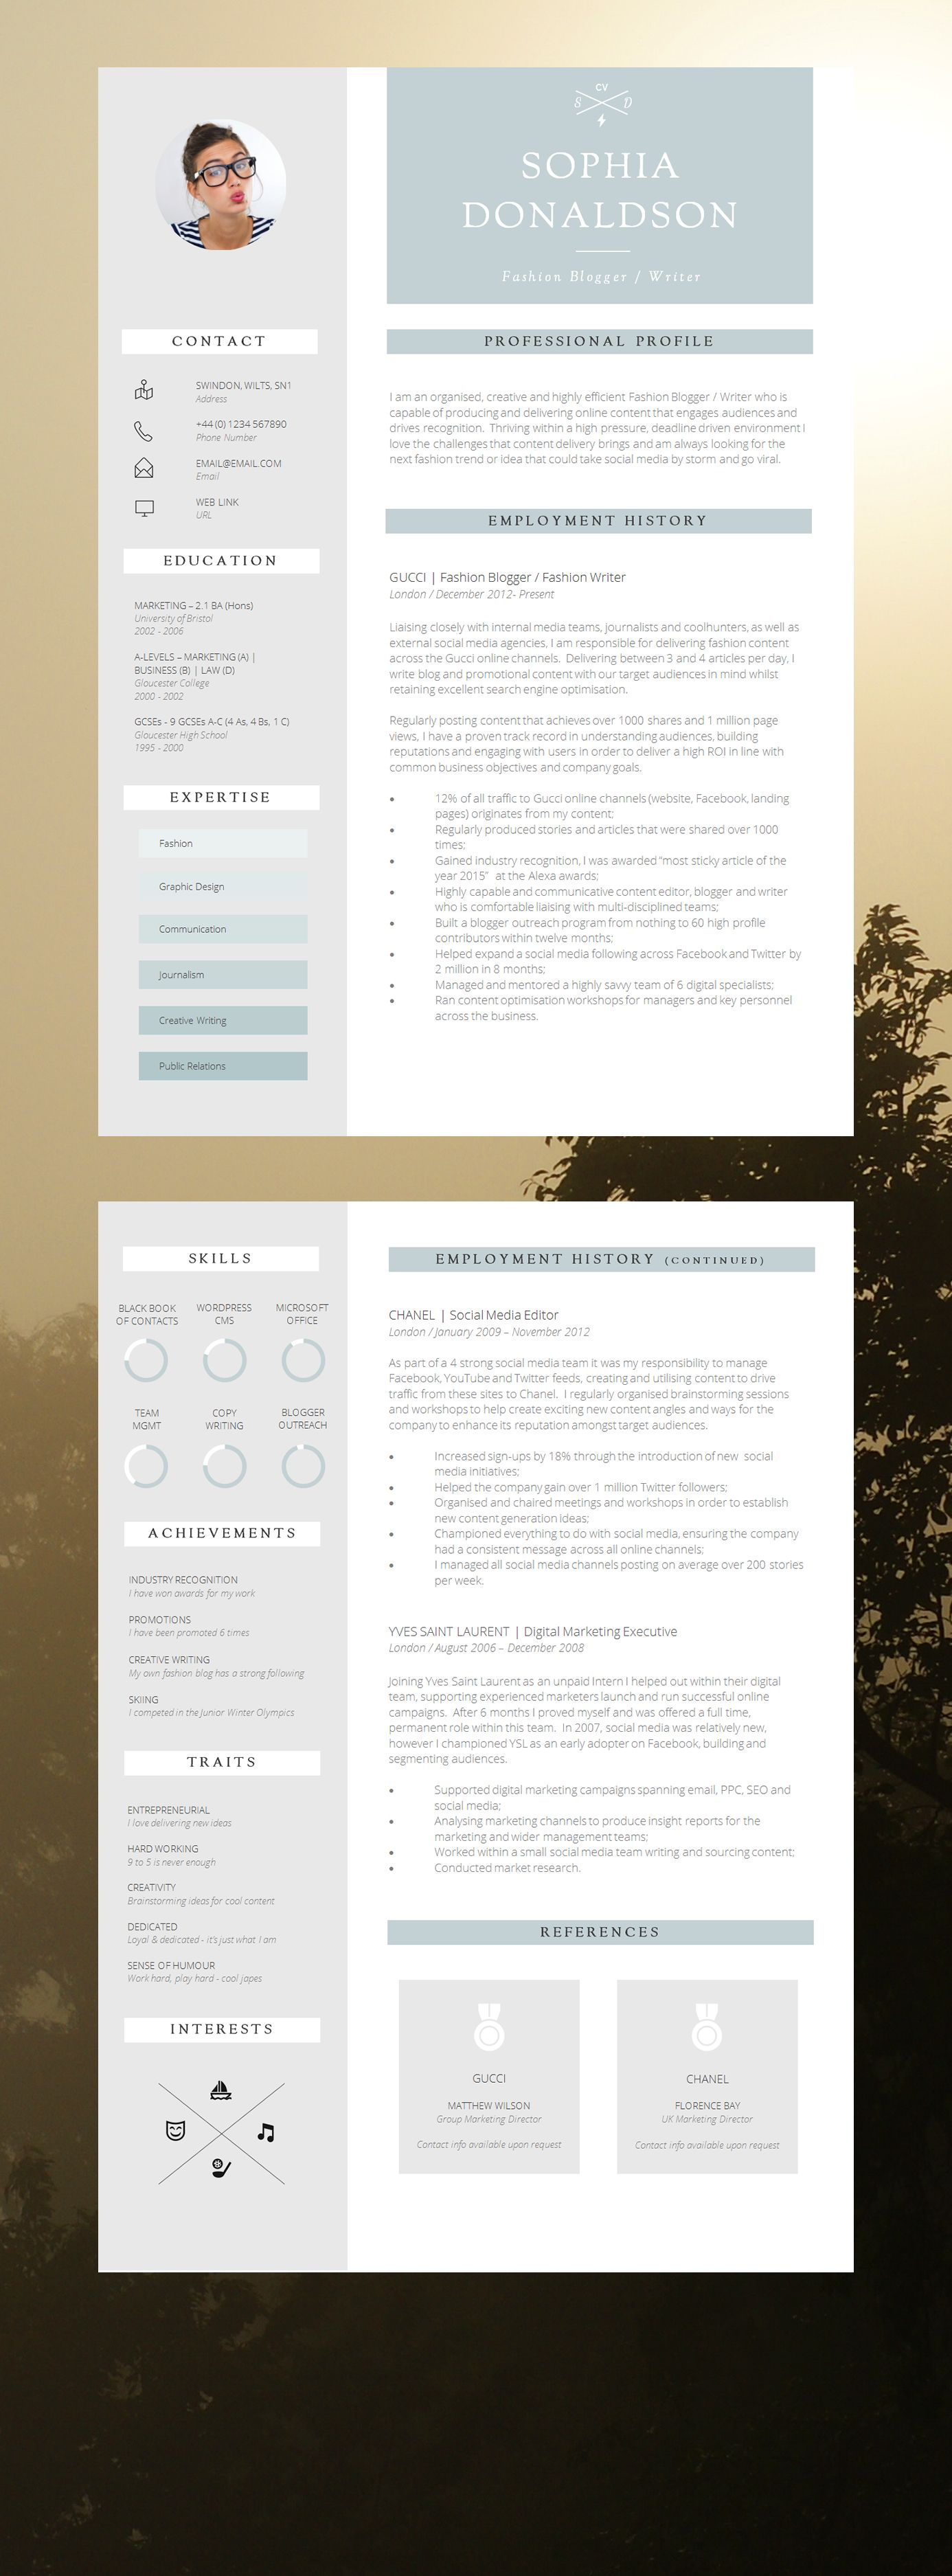 CV Template | Resume Template | CV Design + Cover Letter + CV Guide ...